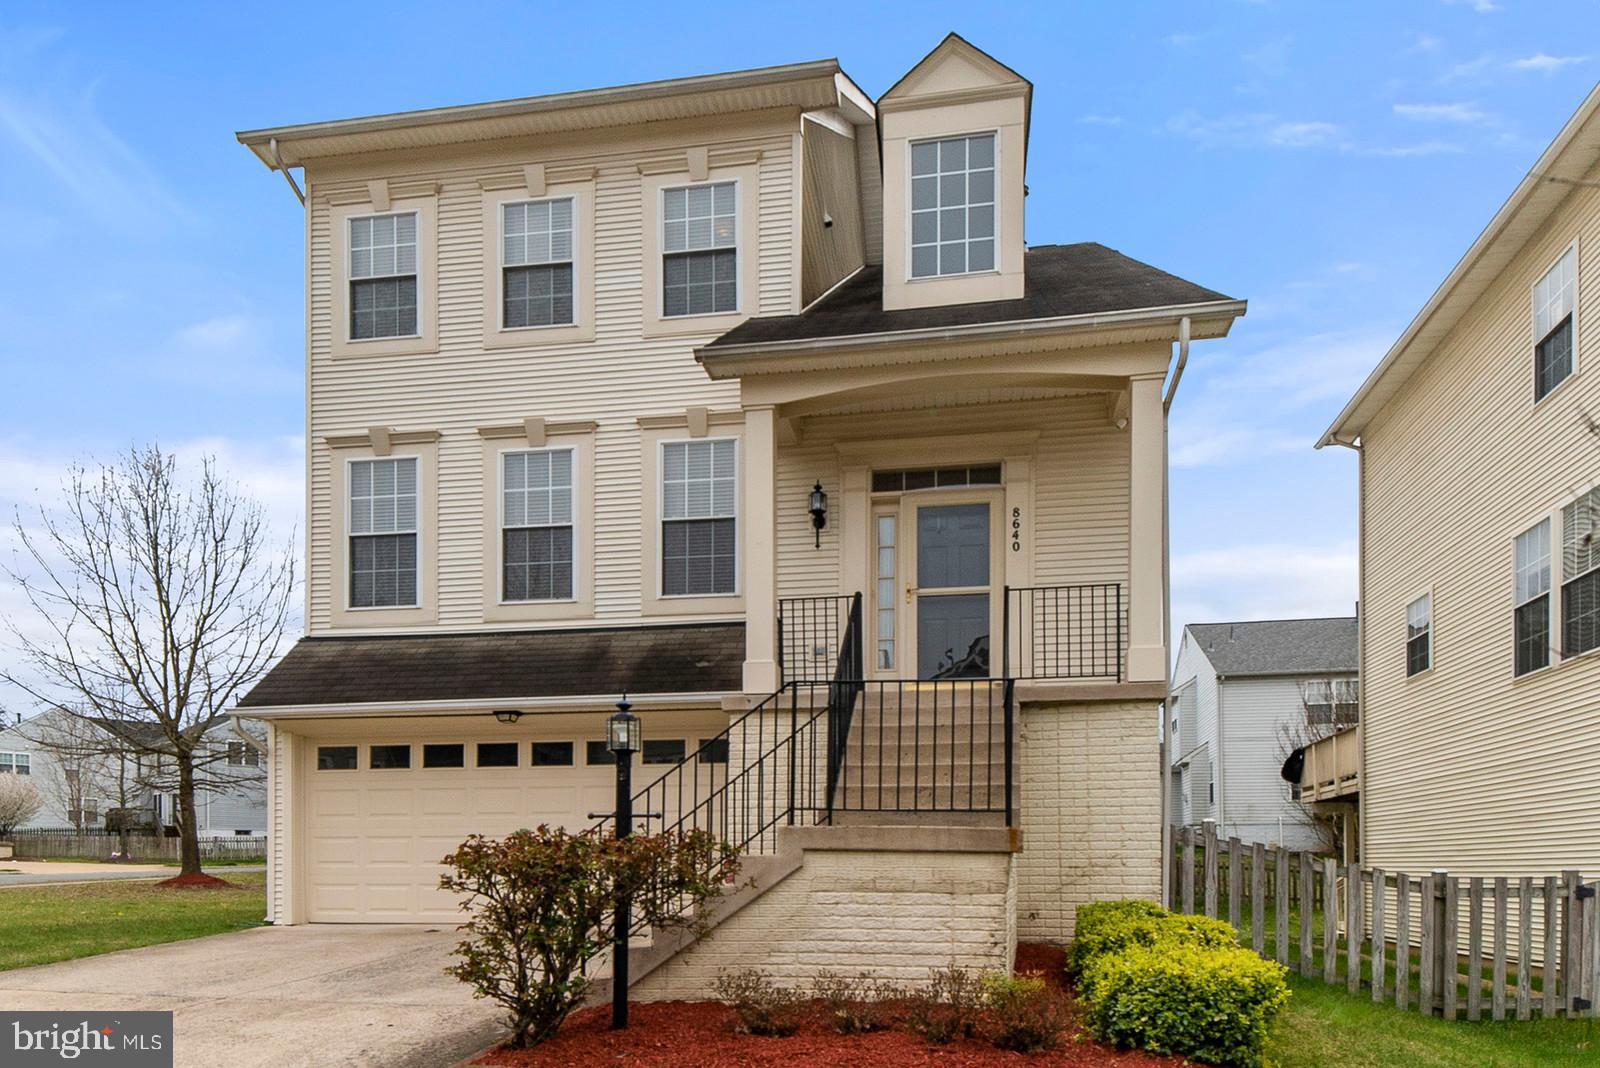 This Beautiful large Corner lot, Single family home is MOVE IN READY!!  Lovely hardwood throughout the main level with open kitchen layout.  Separate office space on main level, Laundry on bedroom level. Fully finished lower level w/ full bath & walkout patio with a hot tub that conveys. Neighborhood is a family friendly Community w/pool!